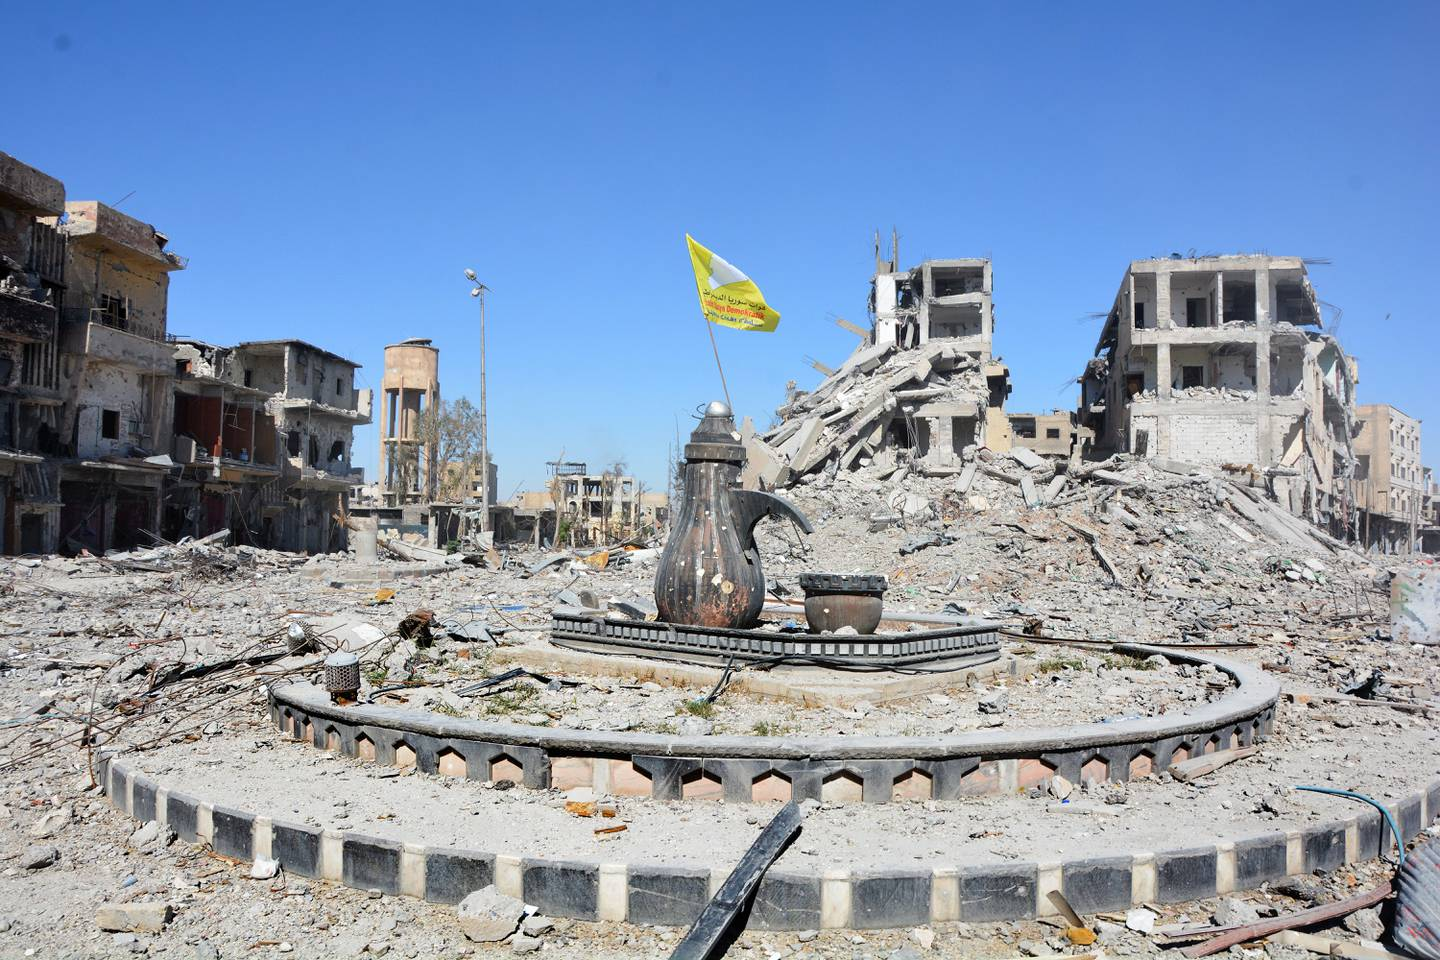 epaselect epa06274744 A view of the Al-Na'im roundabout after its liberation in central Al-Raqqa, Syria, 18 October 2017 (issued 19 October 2017). The Al-Na'im roundabout also known as the 'Roundabout of Hell', located in the center of the city of Al-Raqqa, has been the last to be liberated by US backed Syrian forces from the grip of the organization of the so-called Islamic State (IS, ISIS or ISIL). The roundabout was used by ISIS extremists to perform public executions, beheadings and crucifixions during their three-year rule of the city.  EPA/YOUSSEF RABIH YOUSSEF